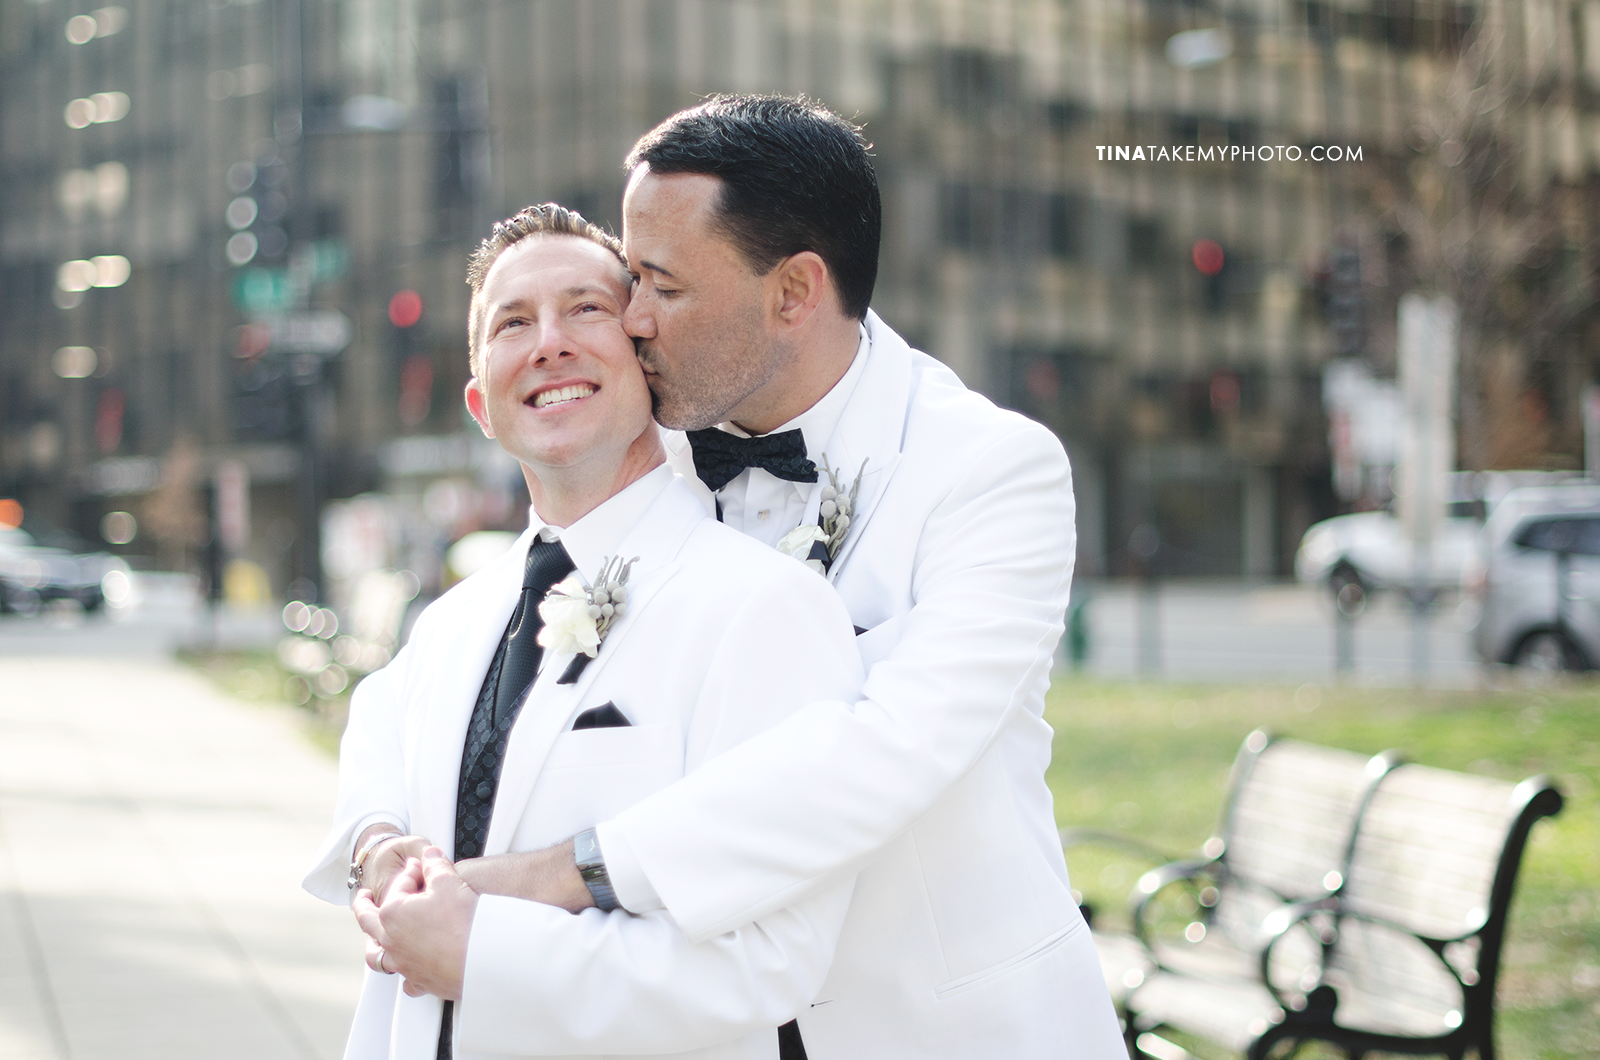 07-Washington-DC-Virginia-Gay-Same-Sex-Wedding-Men-12-13-14-Pose-White-Jackets-Happy-City